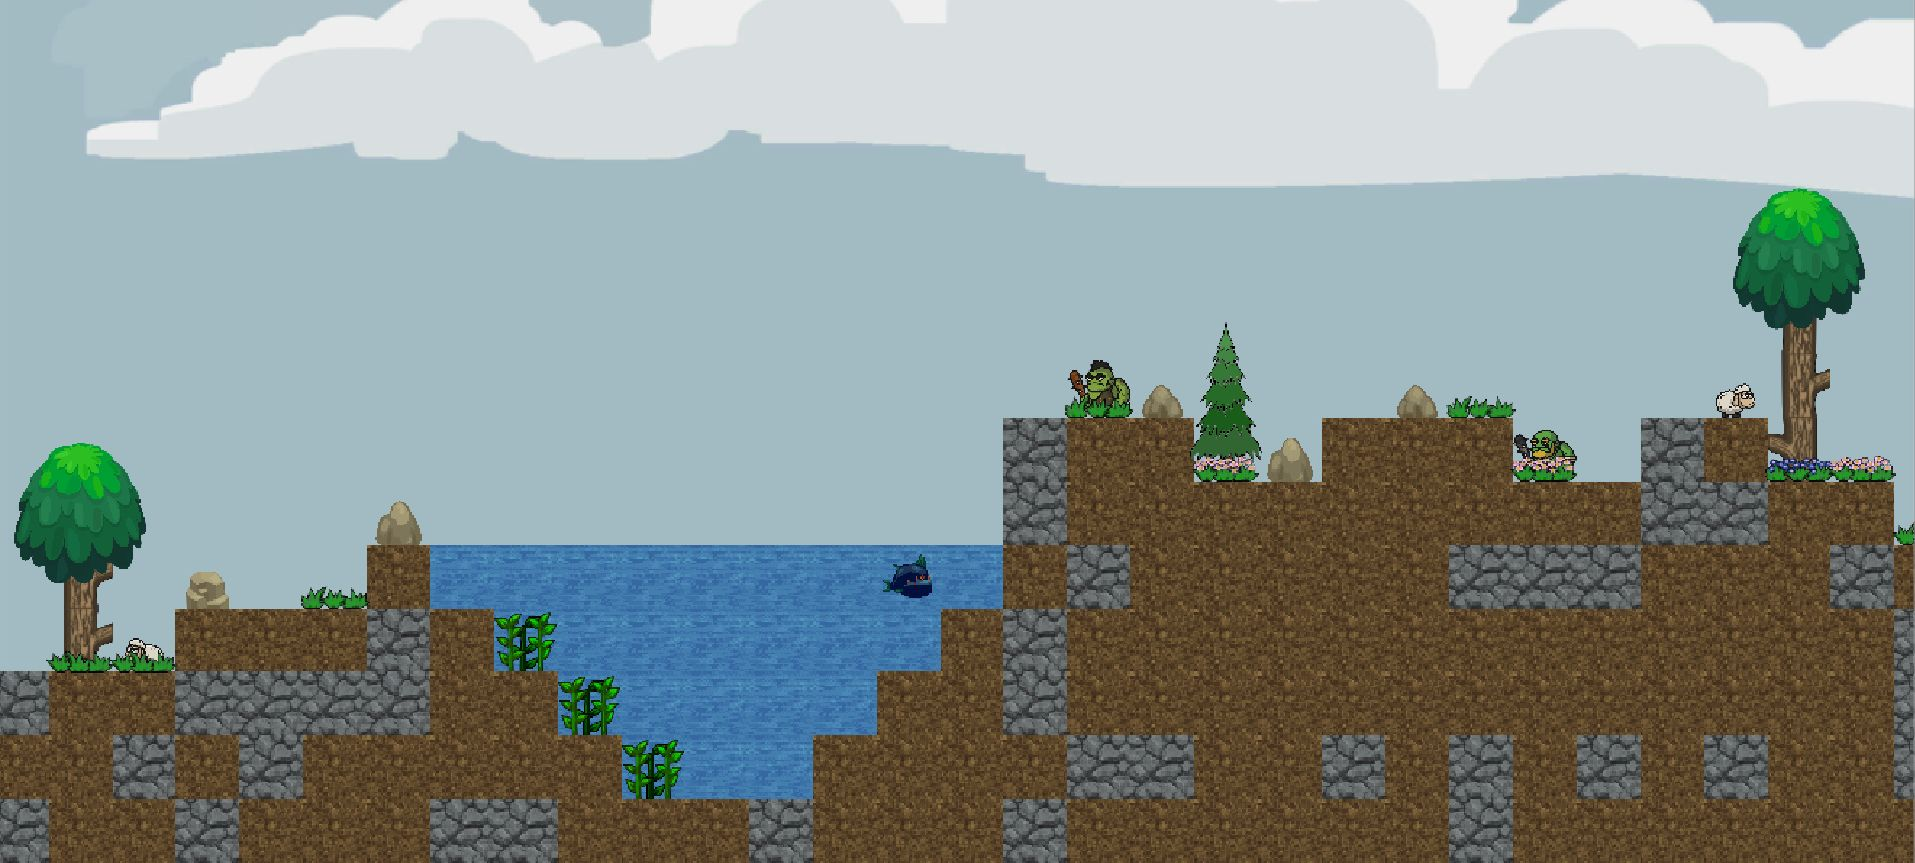 Procedural 2D world generation framework